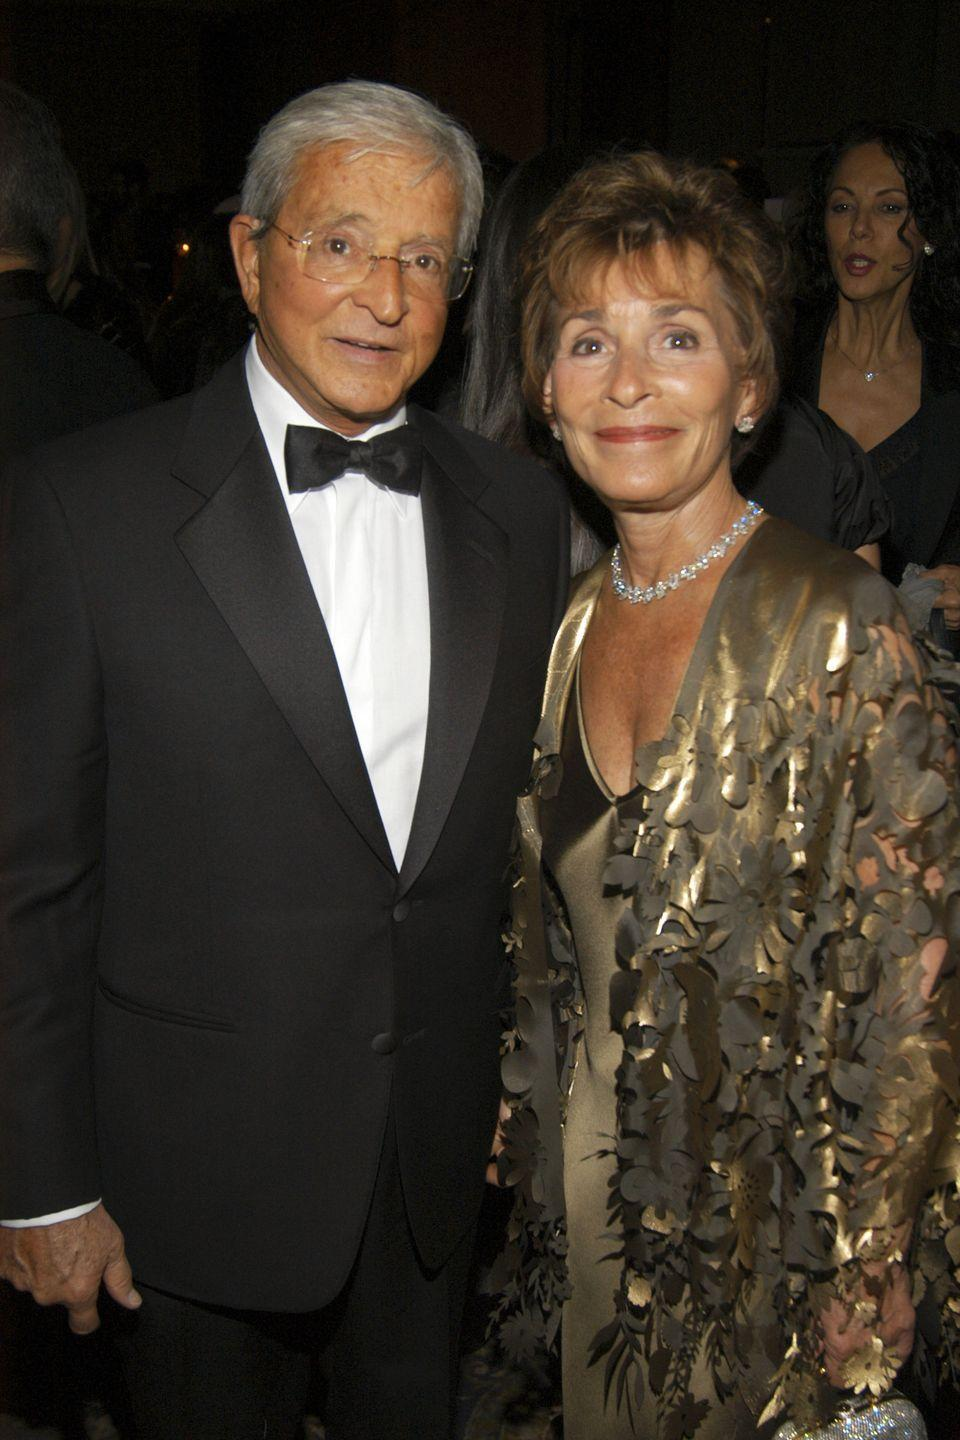 """<p>Judge Judy Sheindlin met her husband, Jerry Sheindlin, <a href=""""https://www.countryliving.com/life/entertainment/a27815965/judge-judy-sheindlin-husband-jerry-sheindlin-marriage-divorce-kids/"""" rel=""""nofollow noopener"""" target=""""_blank"""" data-ylk=""""slk:while working as a prosecutor"""" class=""""link rapid-noclick-resp"""">while working as a prosecutor</a>. The couple married in 1976 and had three children, but after 14 years, the couple divorced in 1990. They didn't stay apart for too long, remarrying a year later, and they've been together ever since. 'I missed Jerry,' Judge Judy told <a href=""""https://www.closerweekly.com/posts/judge-judy-husband-jerry-sheindlin-marriage-143331/"""" rel=""""nofollow noopener"""" target=""""_blank"""" data-ylk=""""slk:Closer Weekly"""" class=""""link rapid-noclick-resp"""">Closer Weekly</a>. 'I like to have someone to fuss over. I like to be mated. It's natural for me. I learned the hard way that sometimes what you think makes you happy won't.'</p>"""